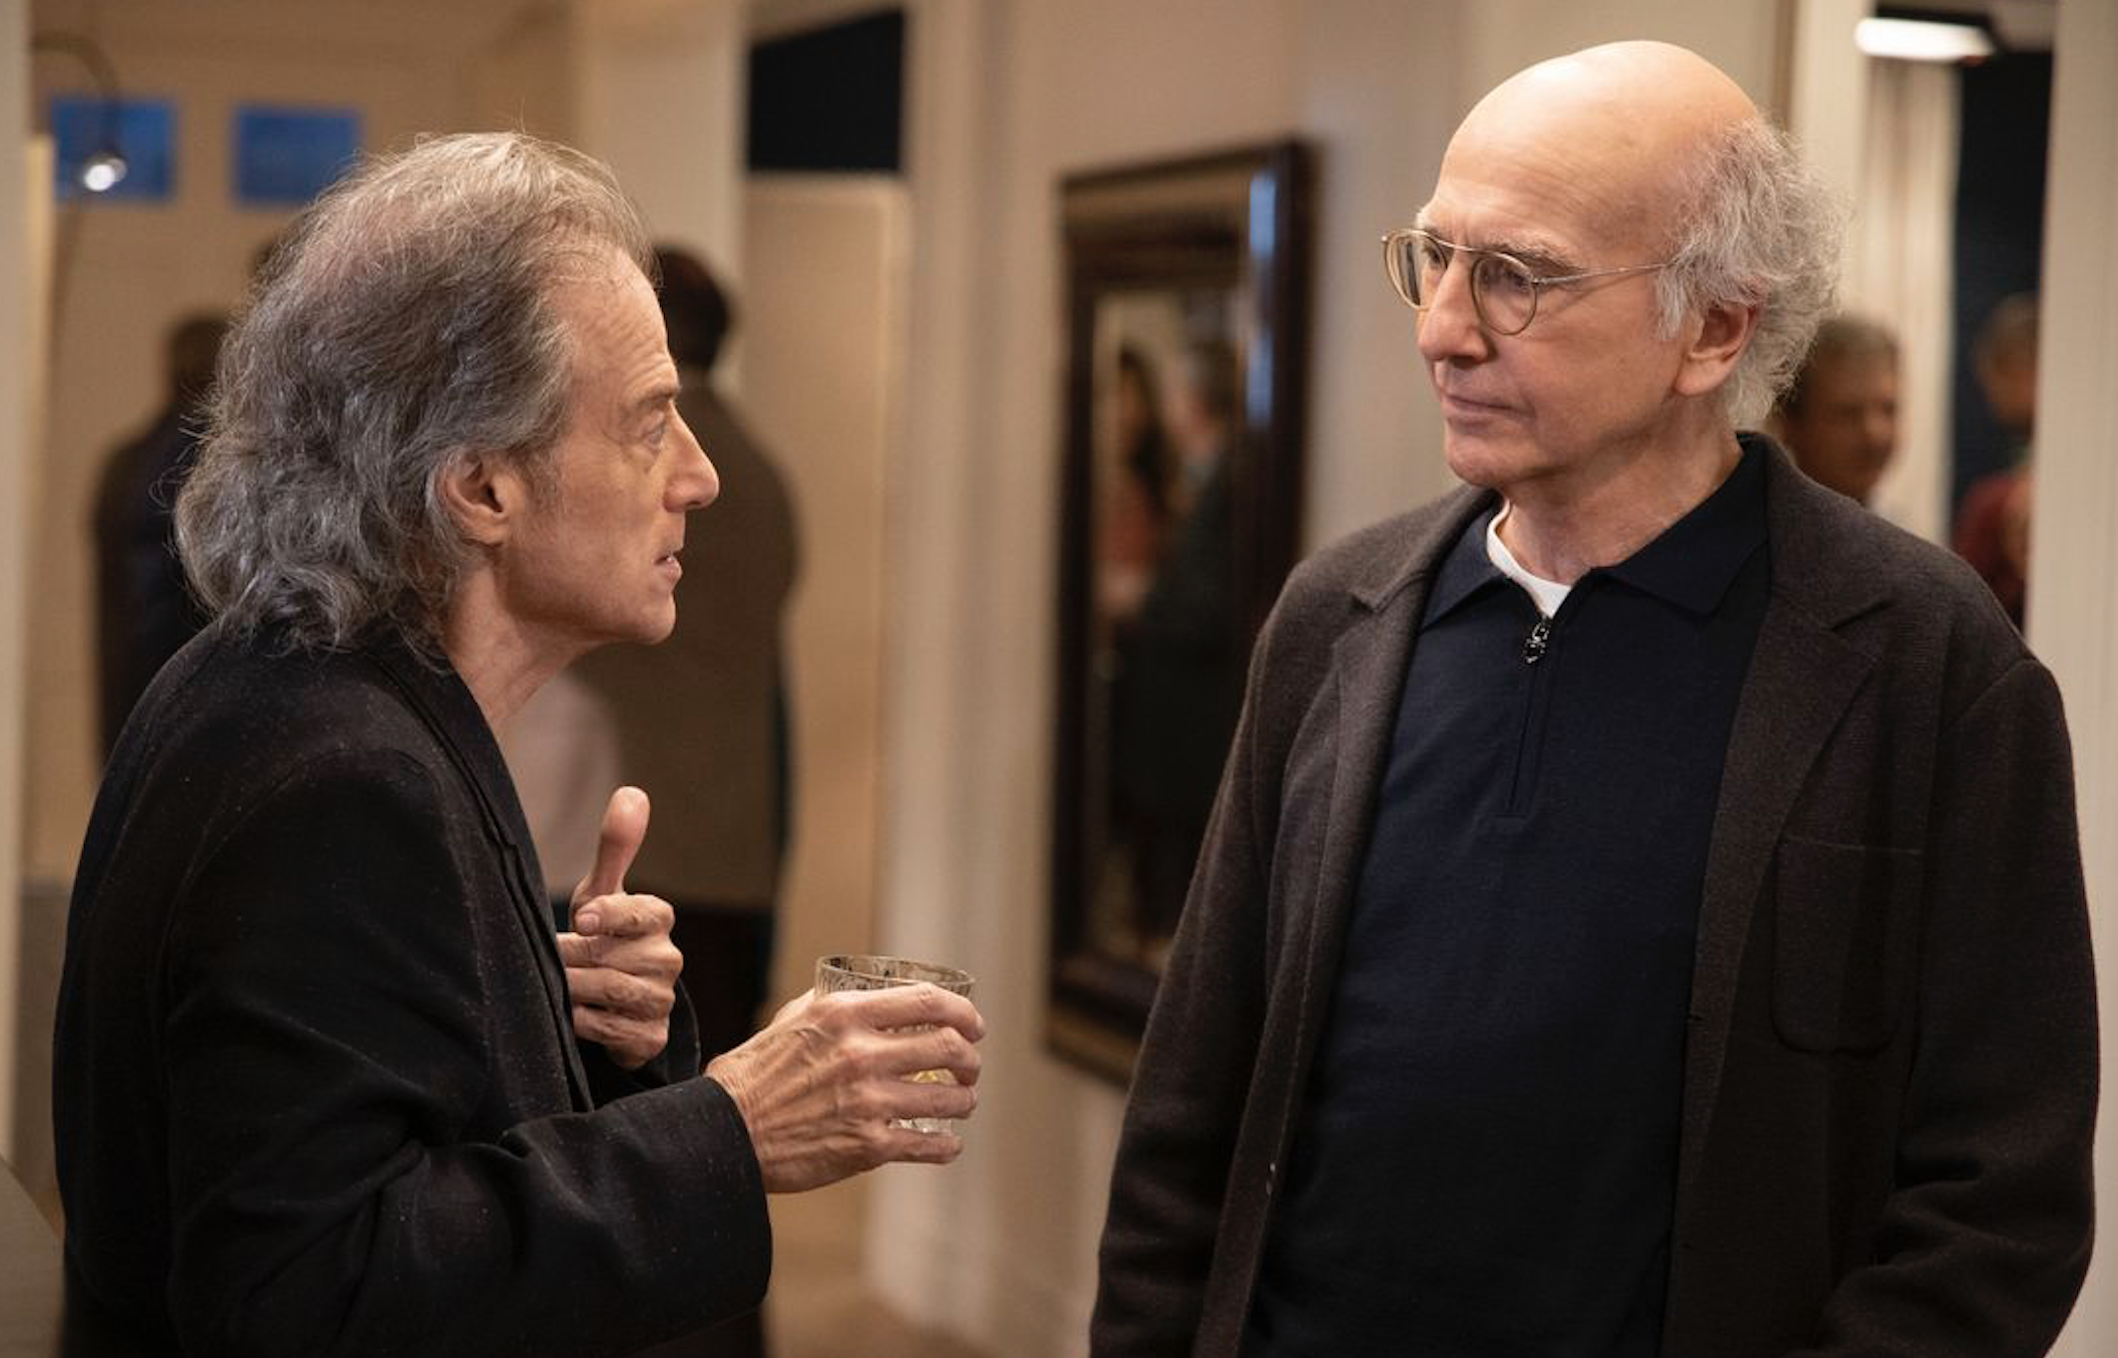 Curb Your Enthusiasm': Richard Lewis Makes Surprise Return to HBO Set    IndieWire